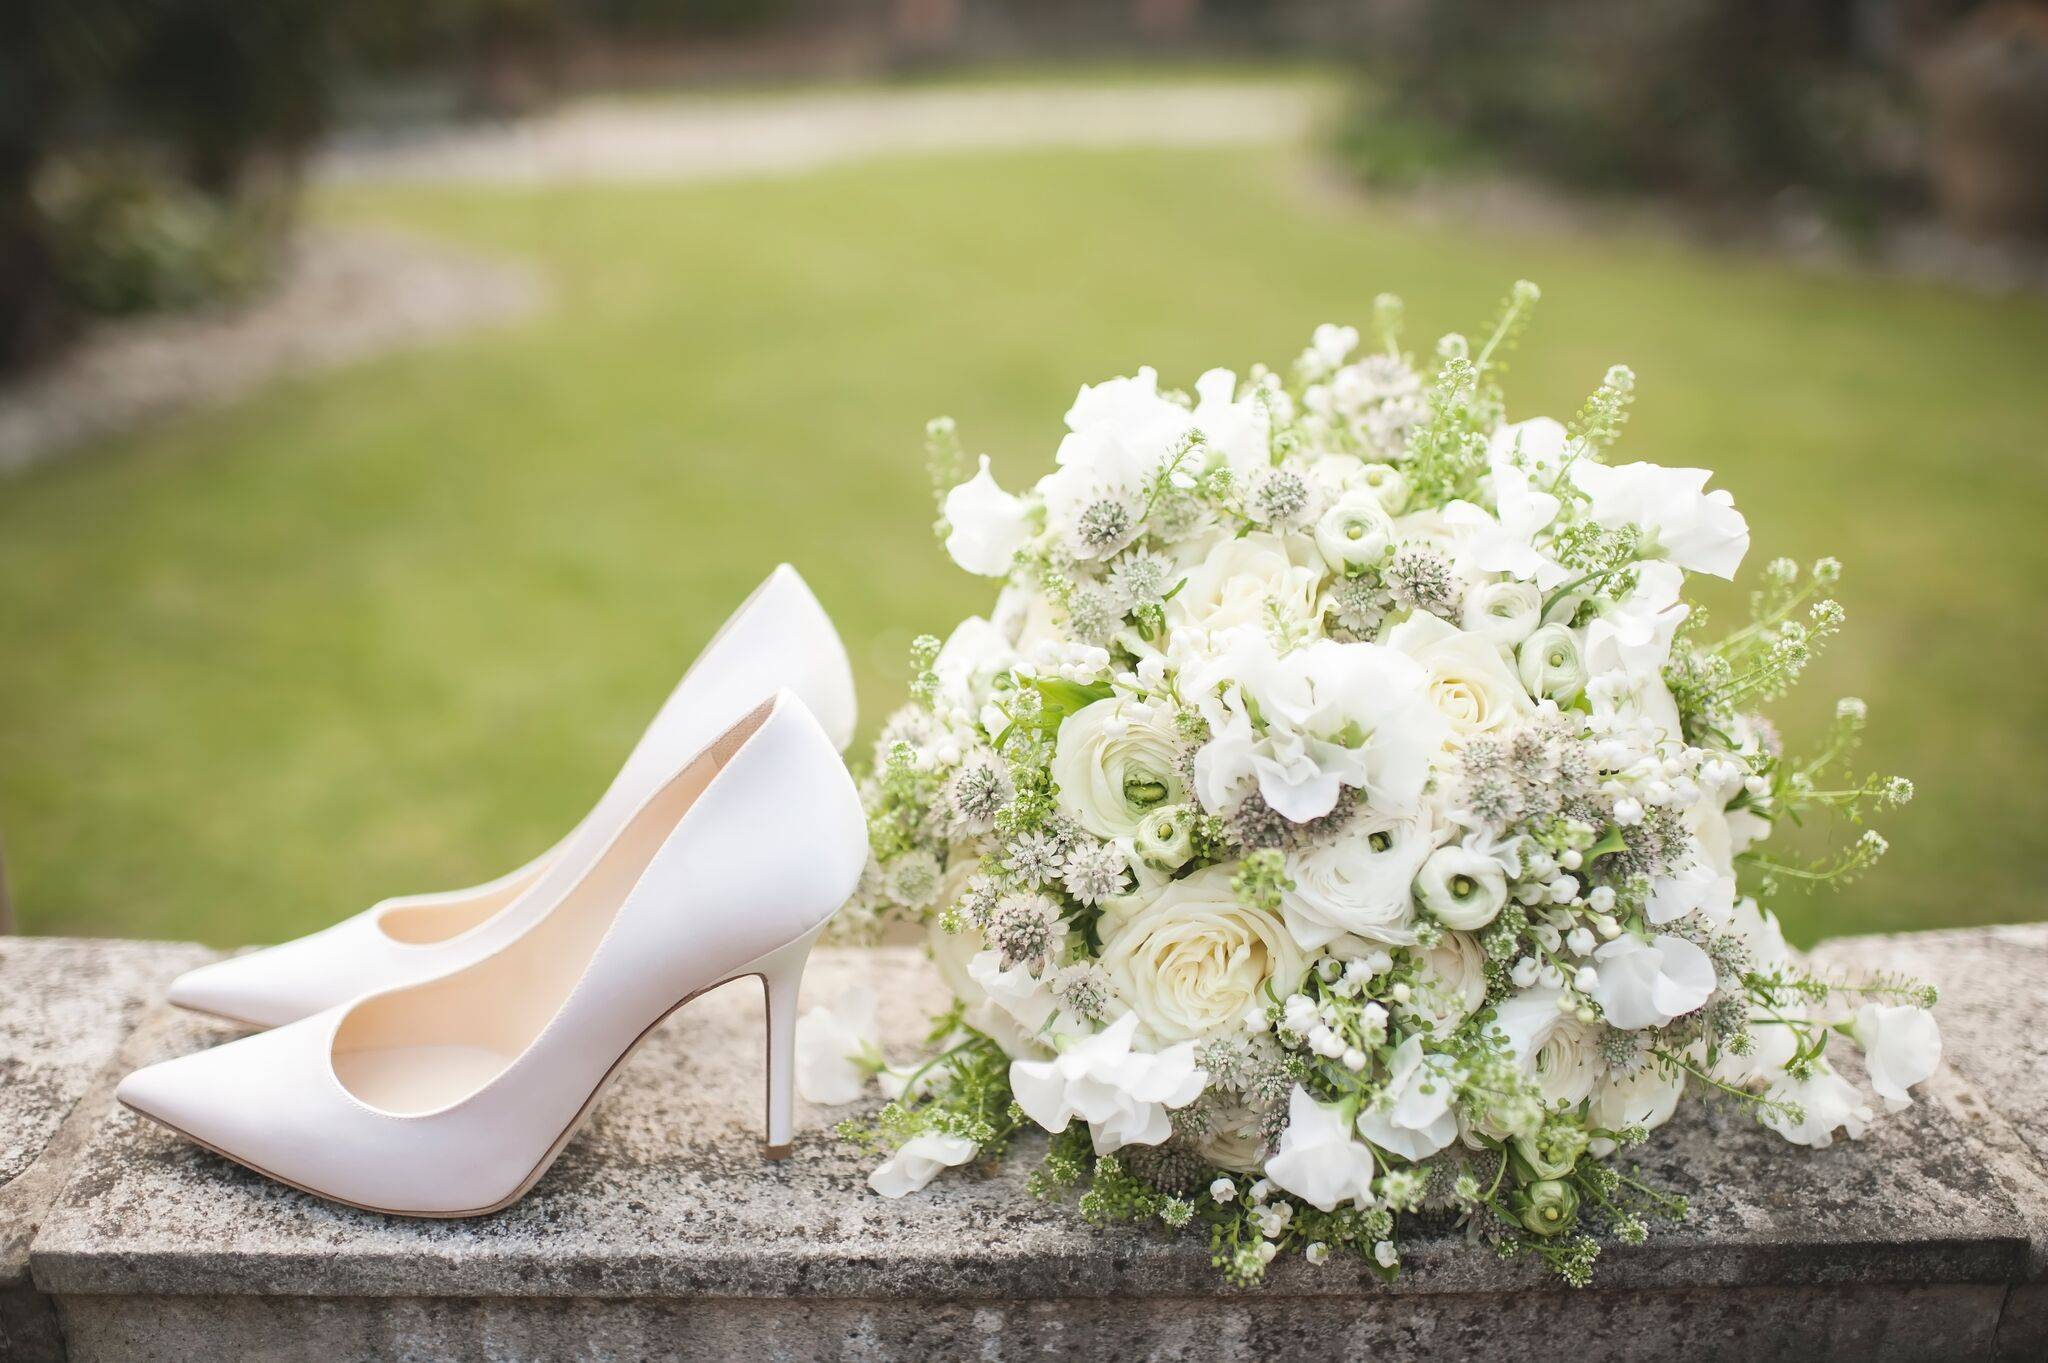 Selecting seasonal wedding flowers